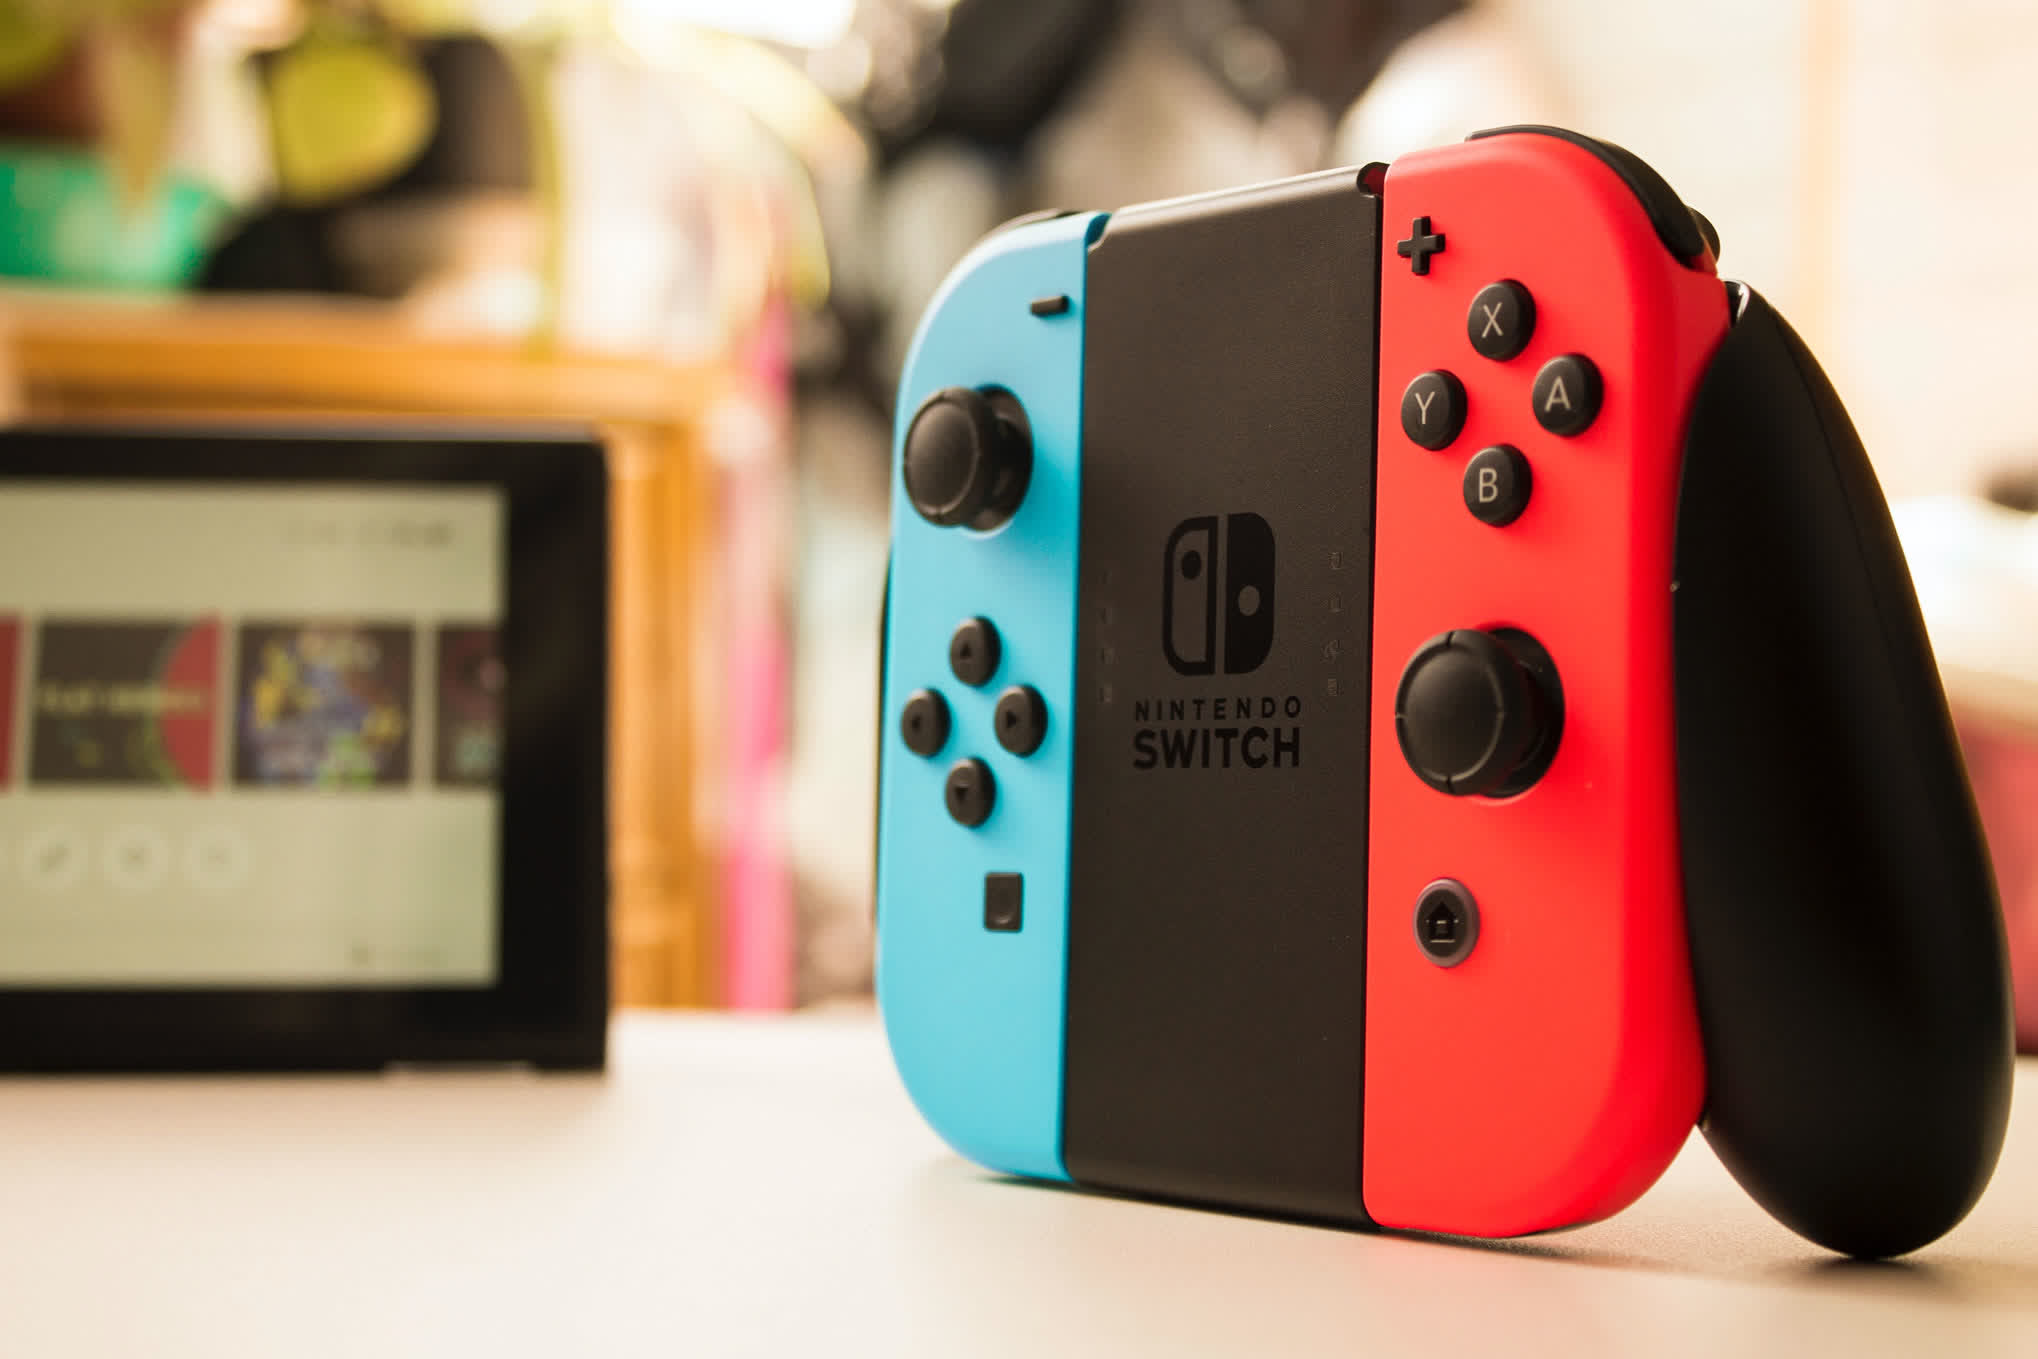 Only a year after launch, Nintendo Switch becomes China's most popular gaming console